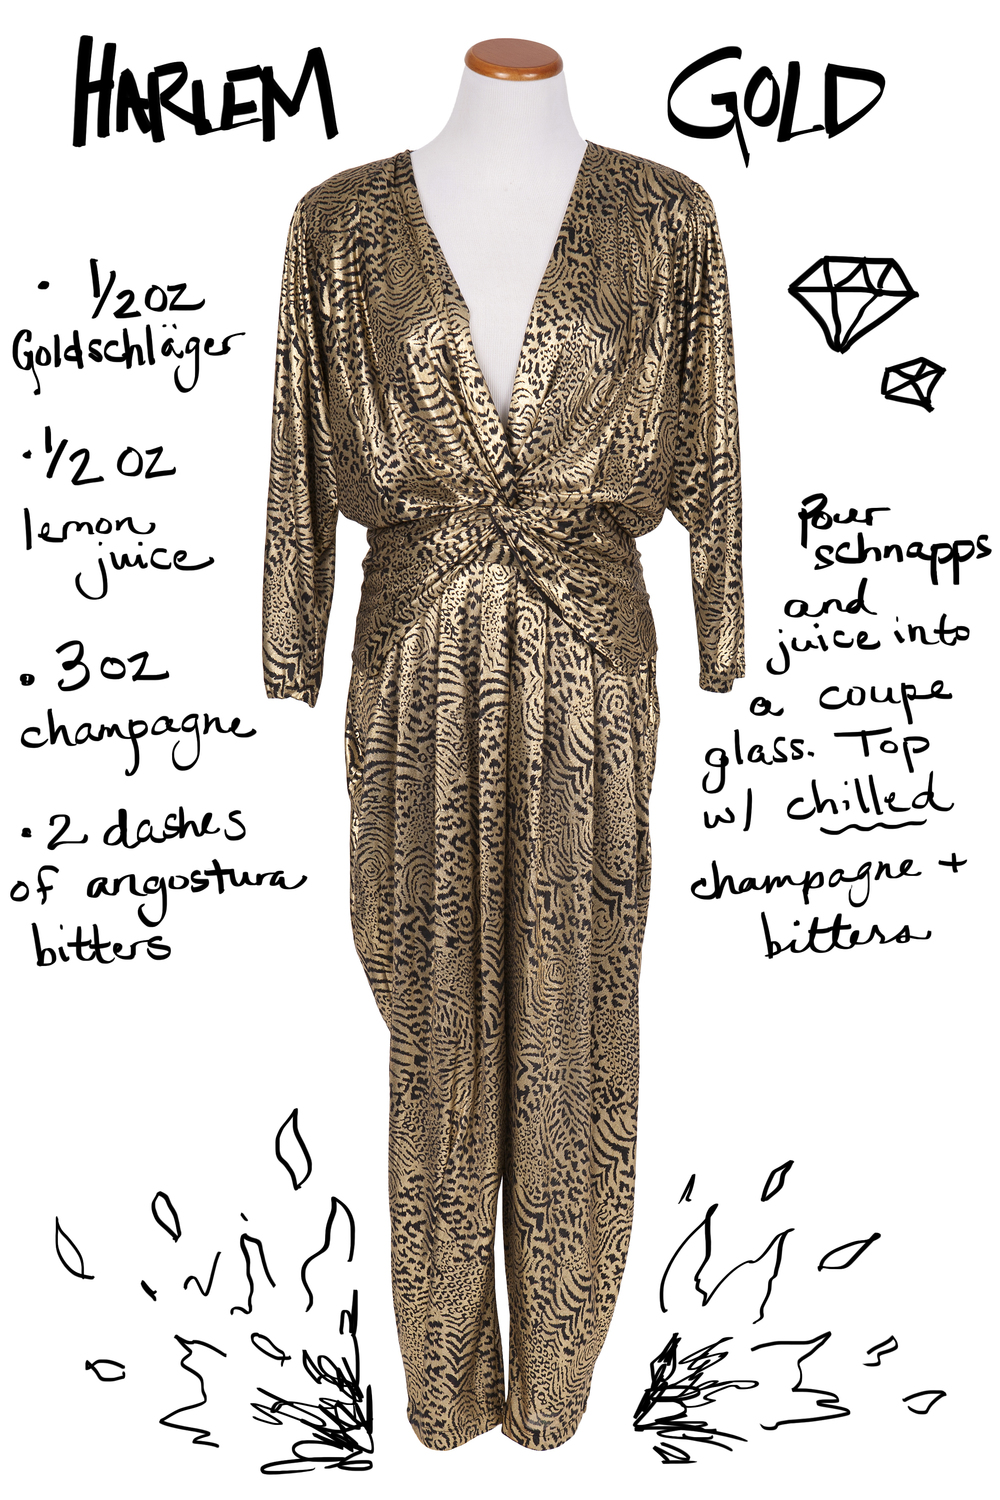 Vintage gold jumpsuit paired with Goldschlager and champagne